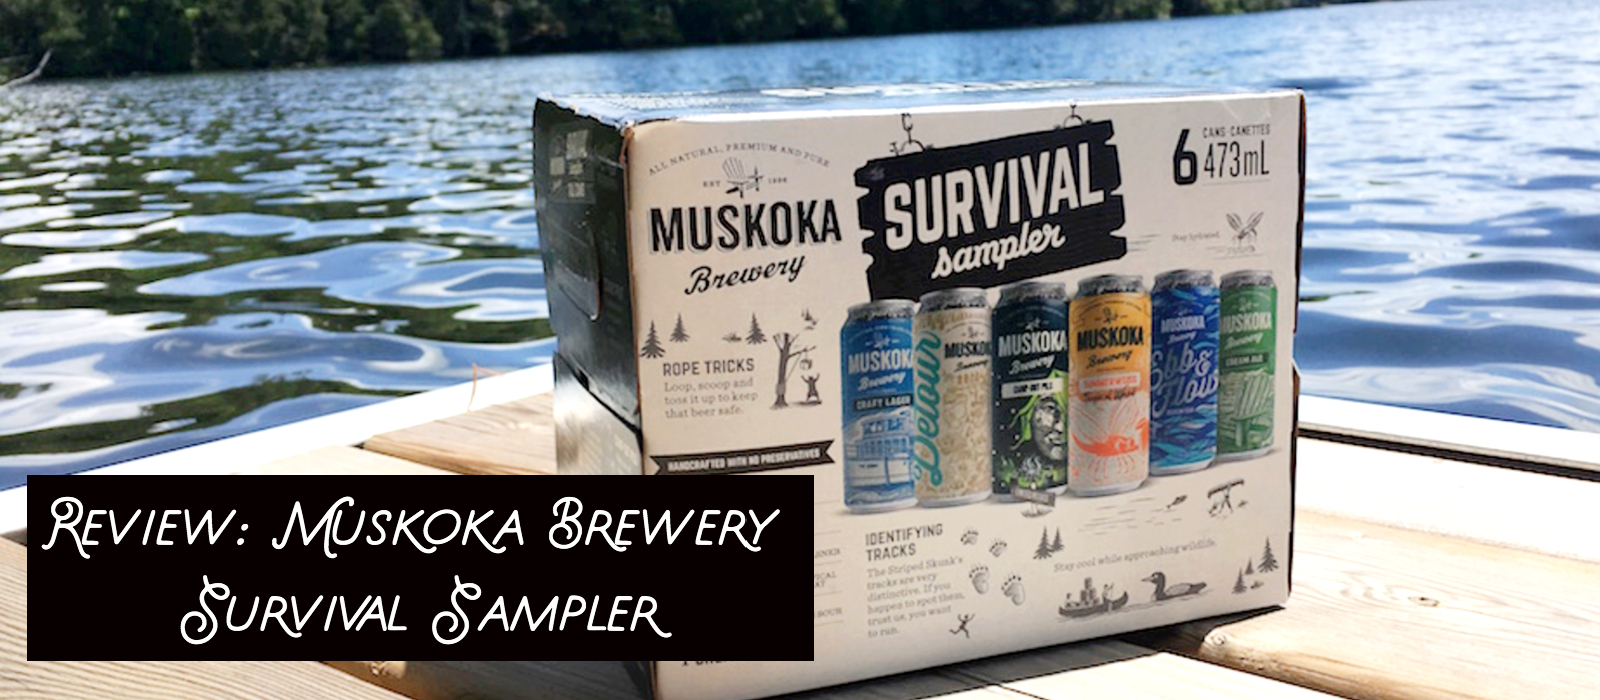 Muskoka Brewery Survival Sampler box with beers pictured on it, sitting on a dock near the lakeside